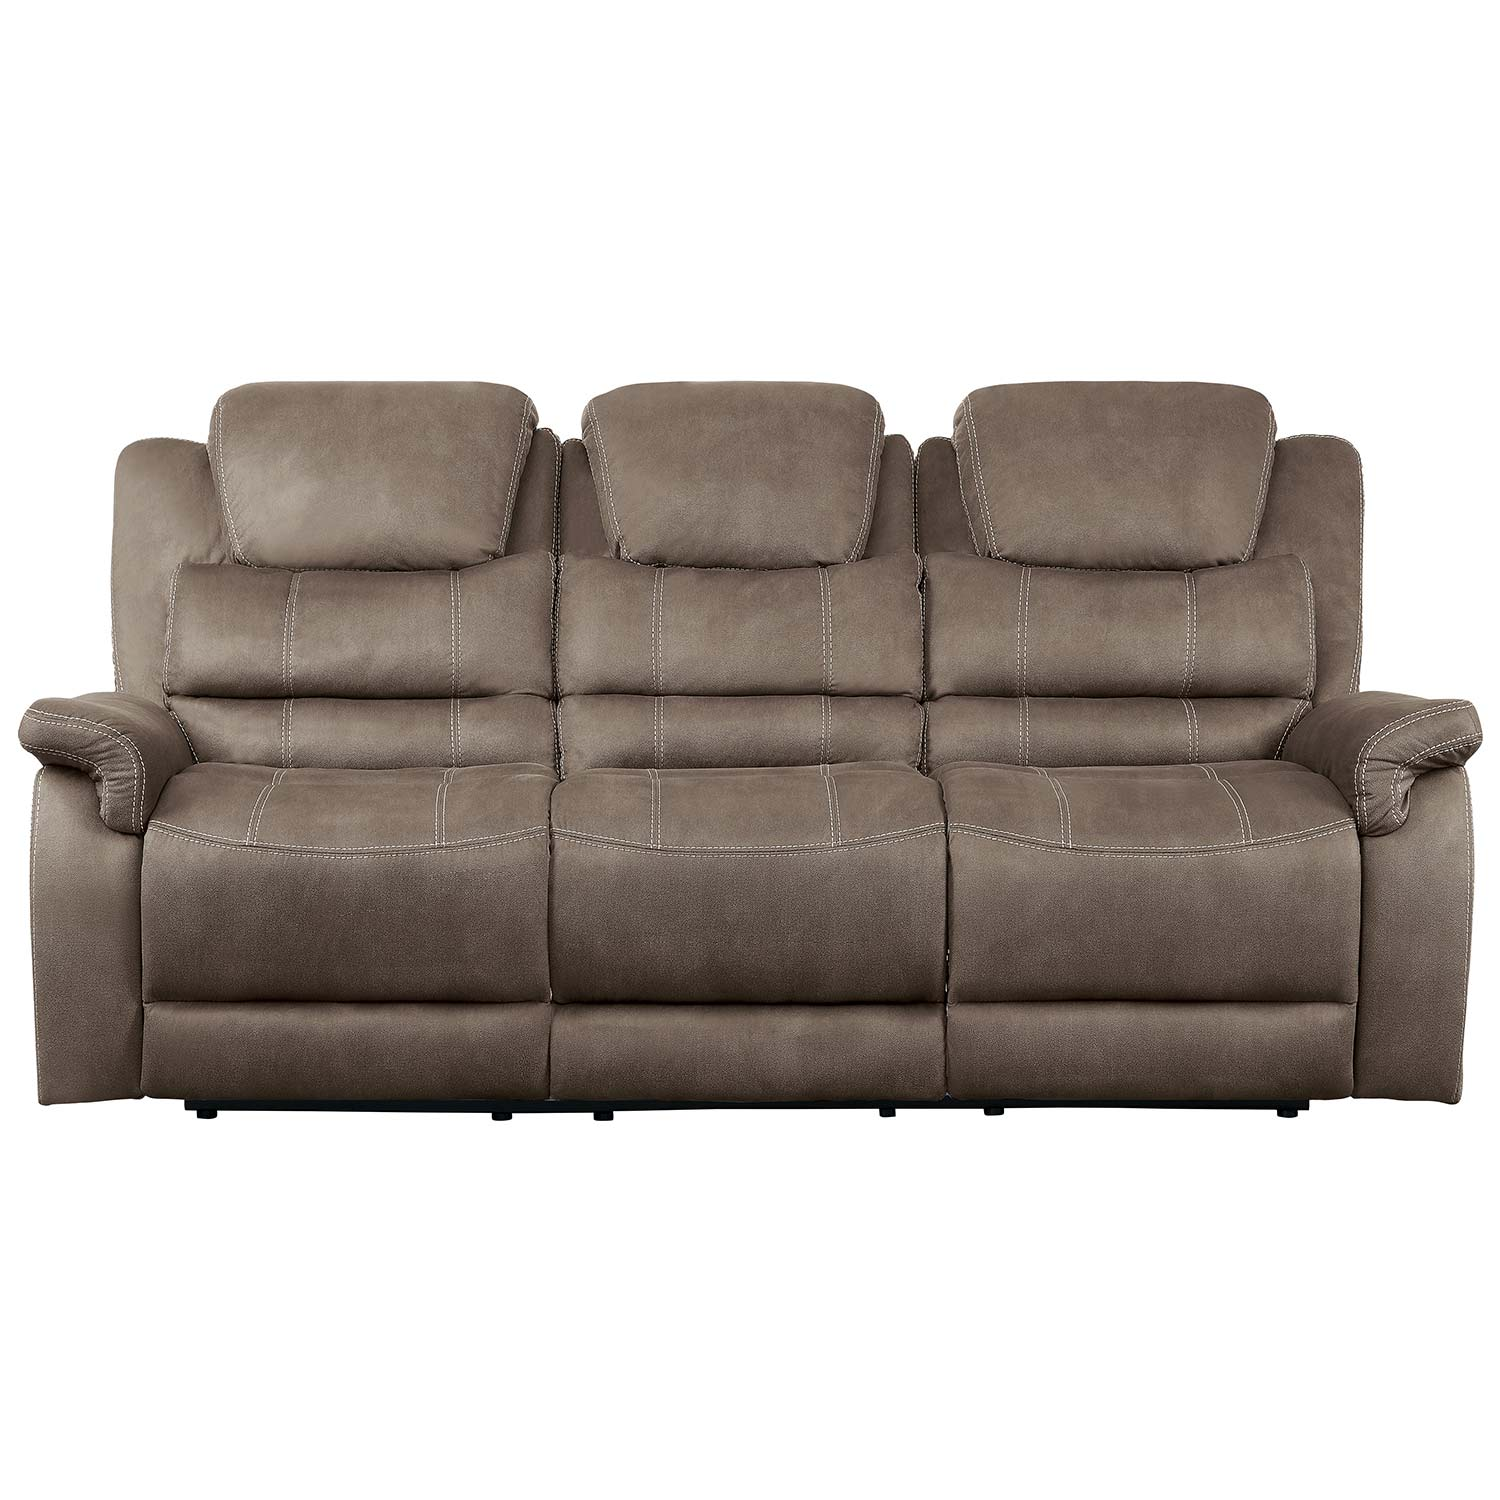 Homelegance Shola Power Double Reclining Sofa with Power Headrests, Drop-Down Cup holders and Receptacles - Brown